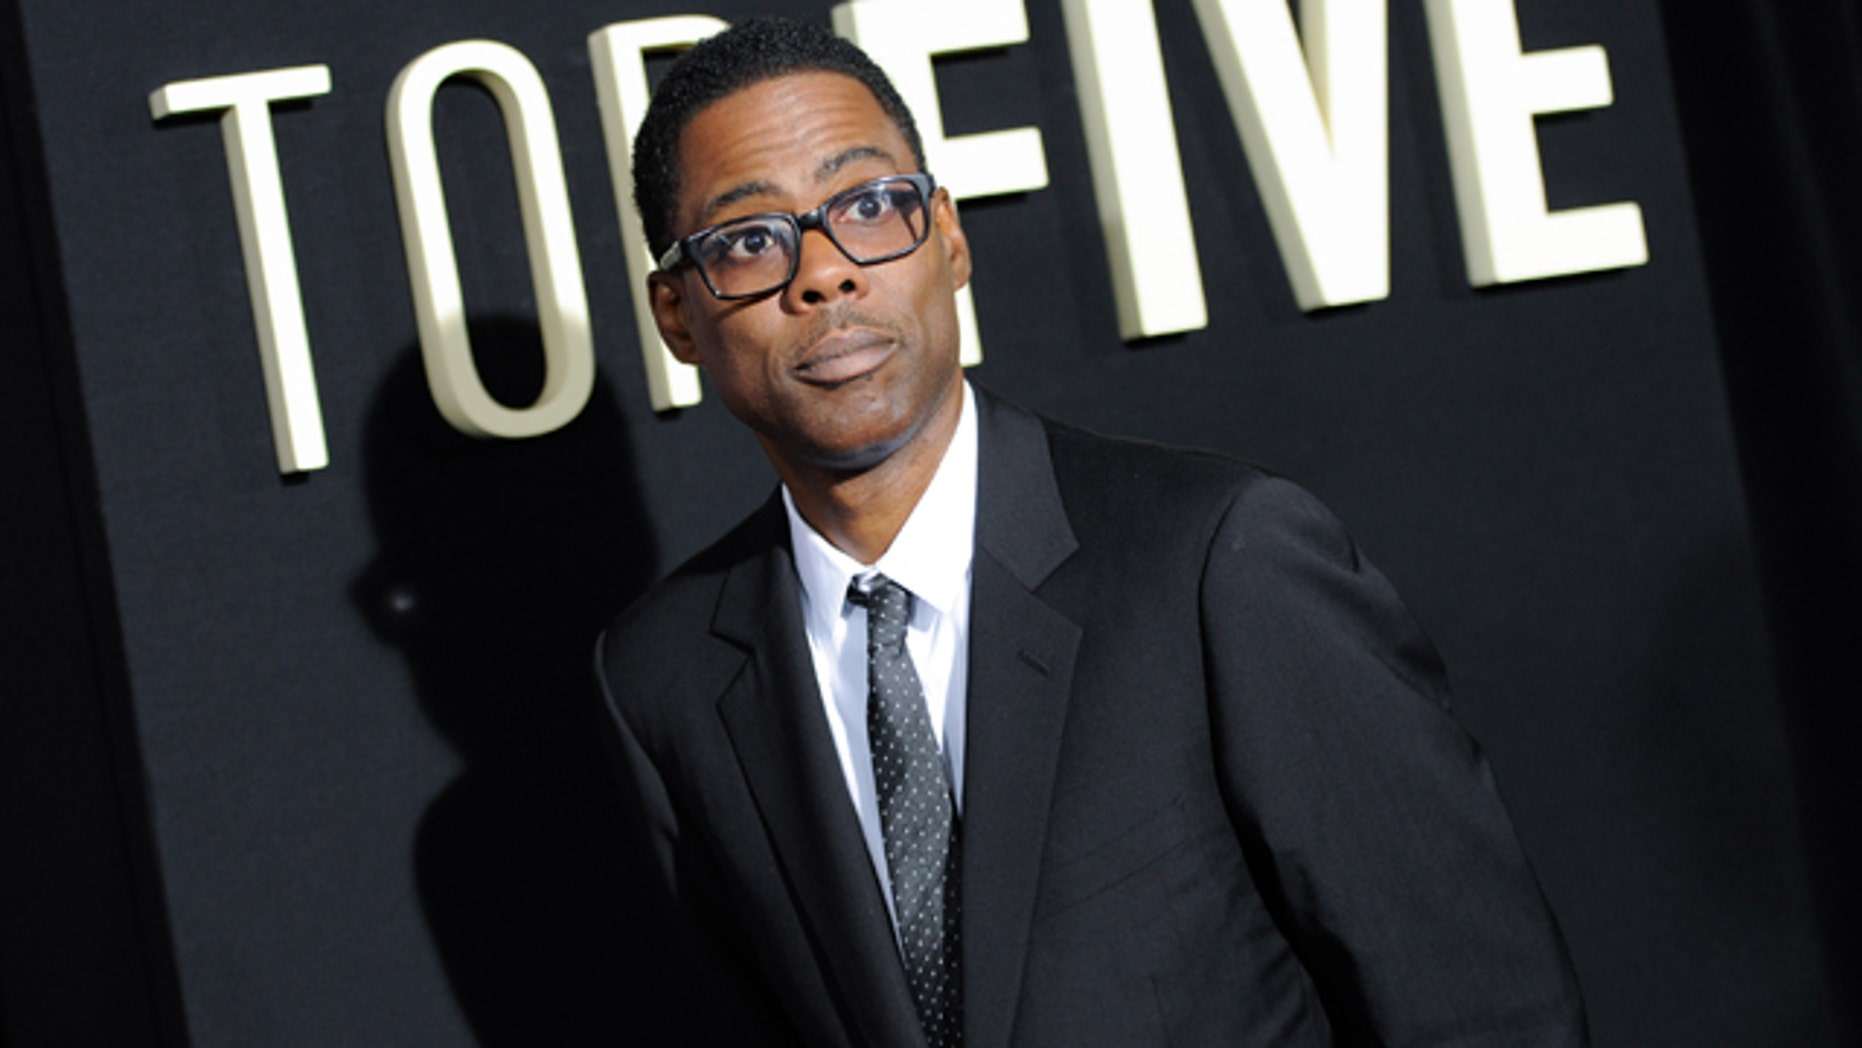 FILE - In this Dec. 3, 2014 file photo, actor Chris Rock attends the premiere of 'Top Five' at the Ziegfeld Theatre in New York. (Photo by Evan Agostini/Invision/AP, File)